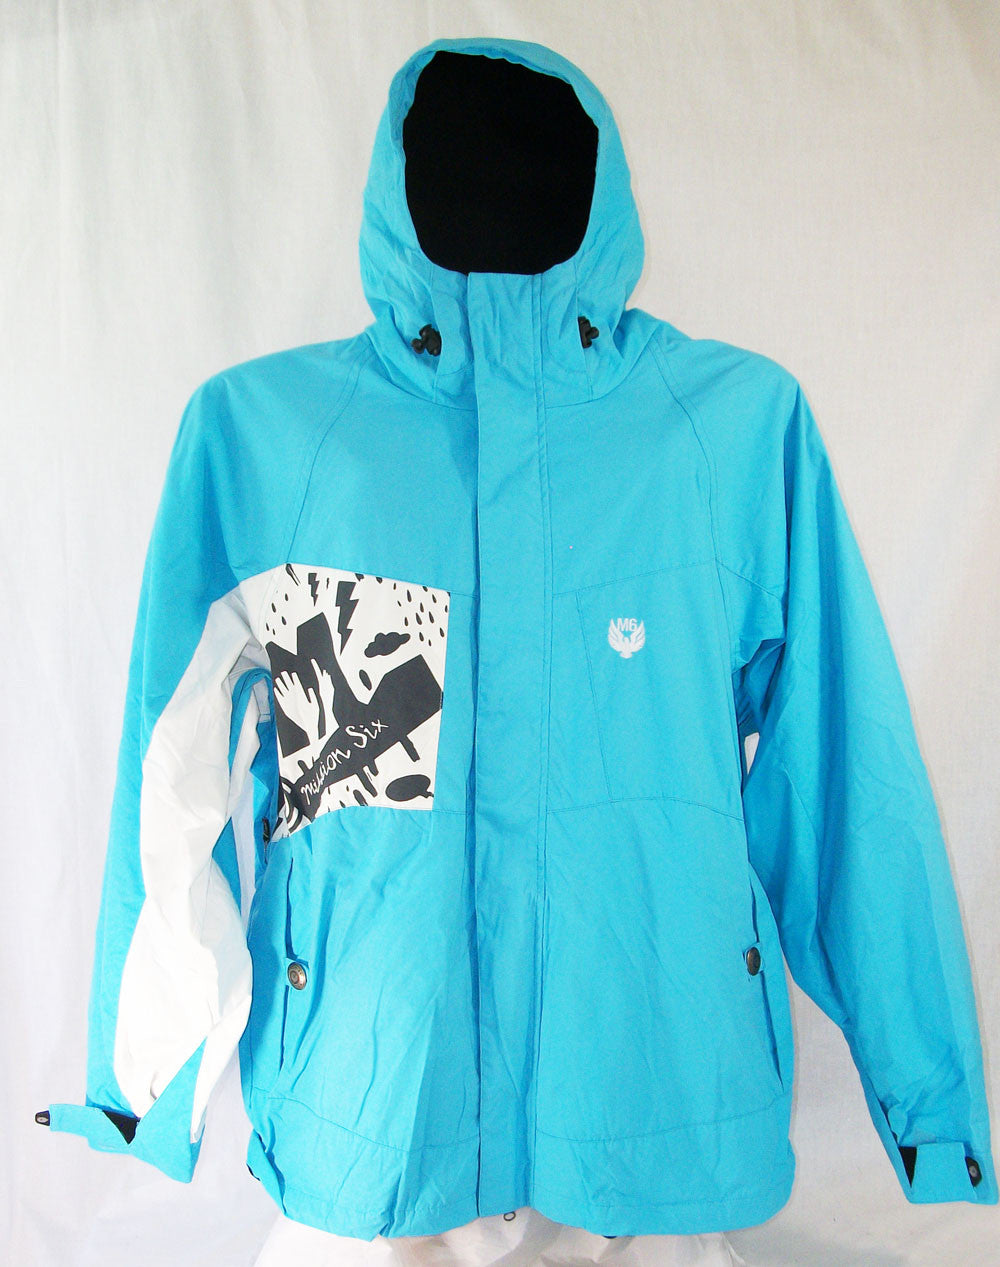 M6 Crankcase Mens Snowboard Ski Jacket Blue Large